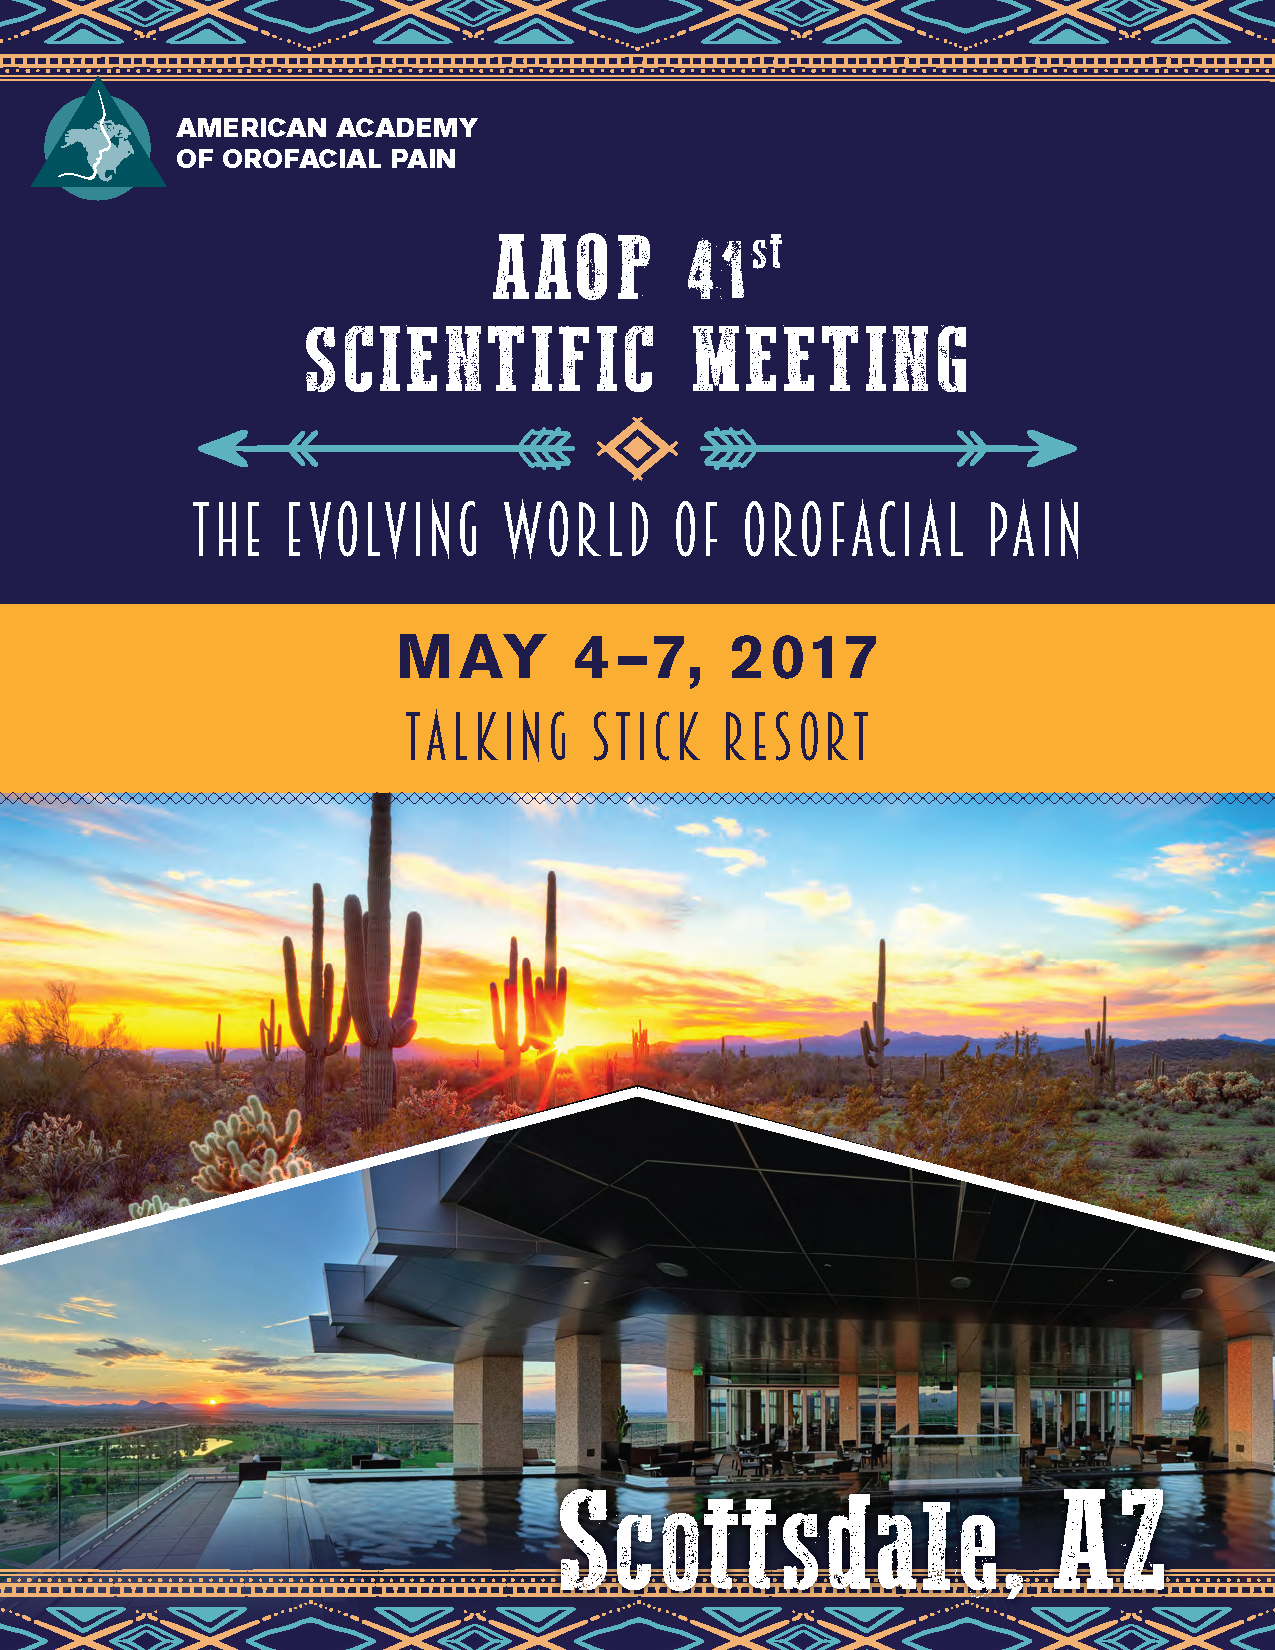 AAOP 2017 Registration Brochure in PDF format